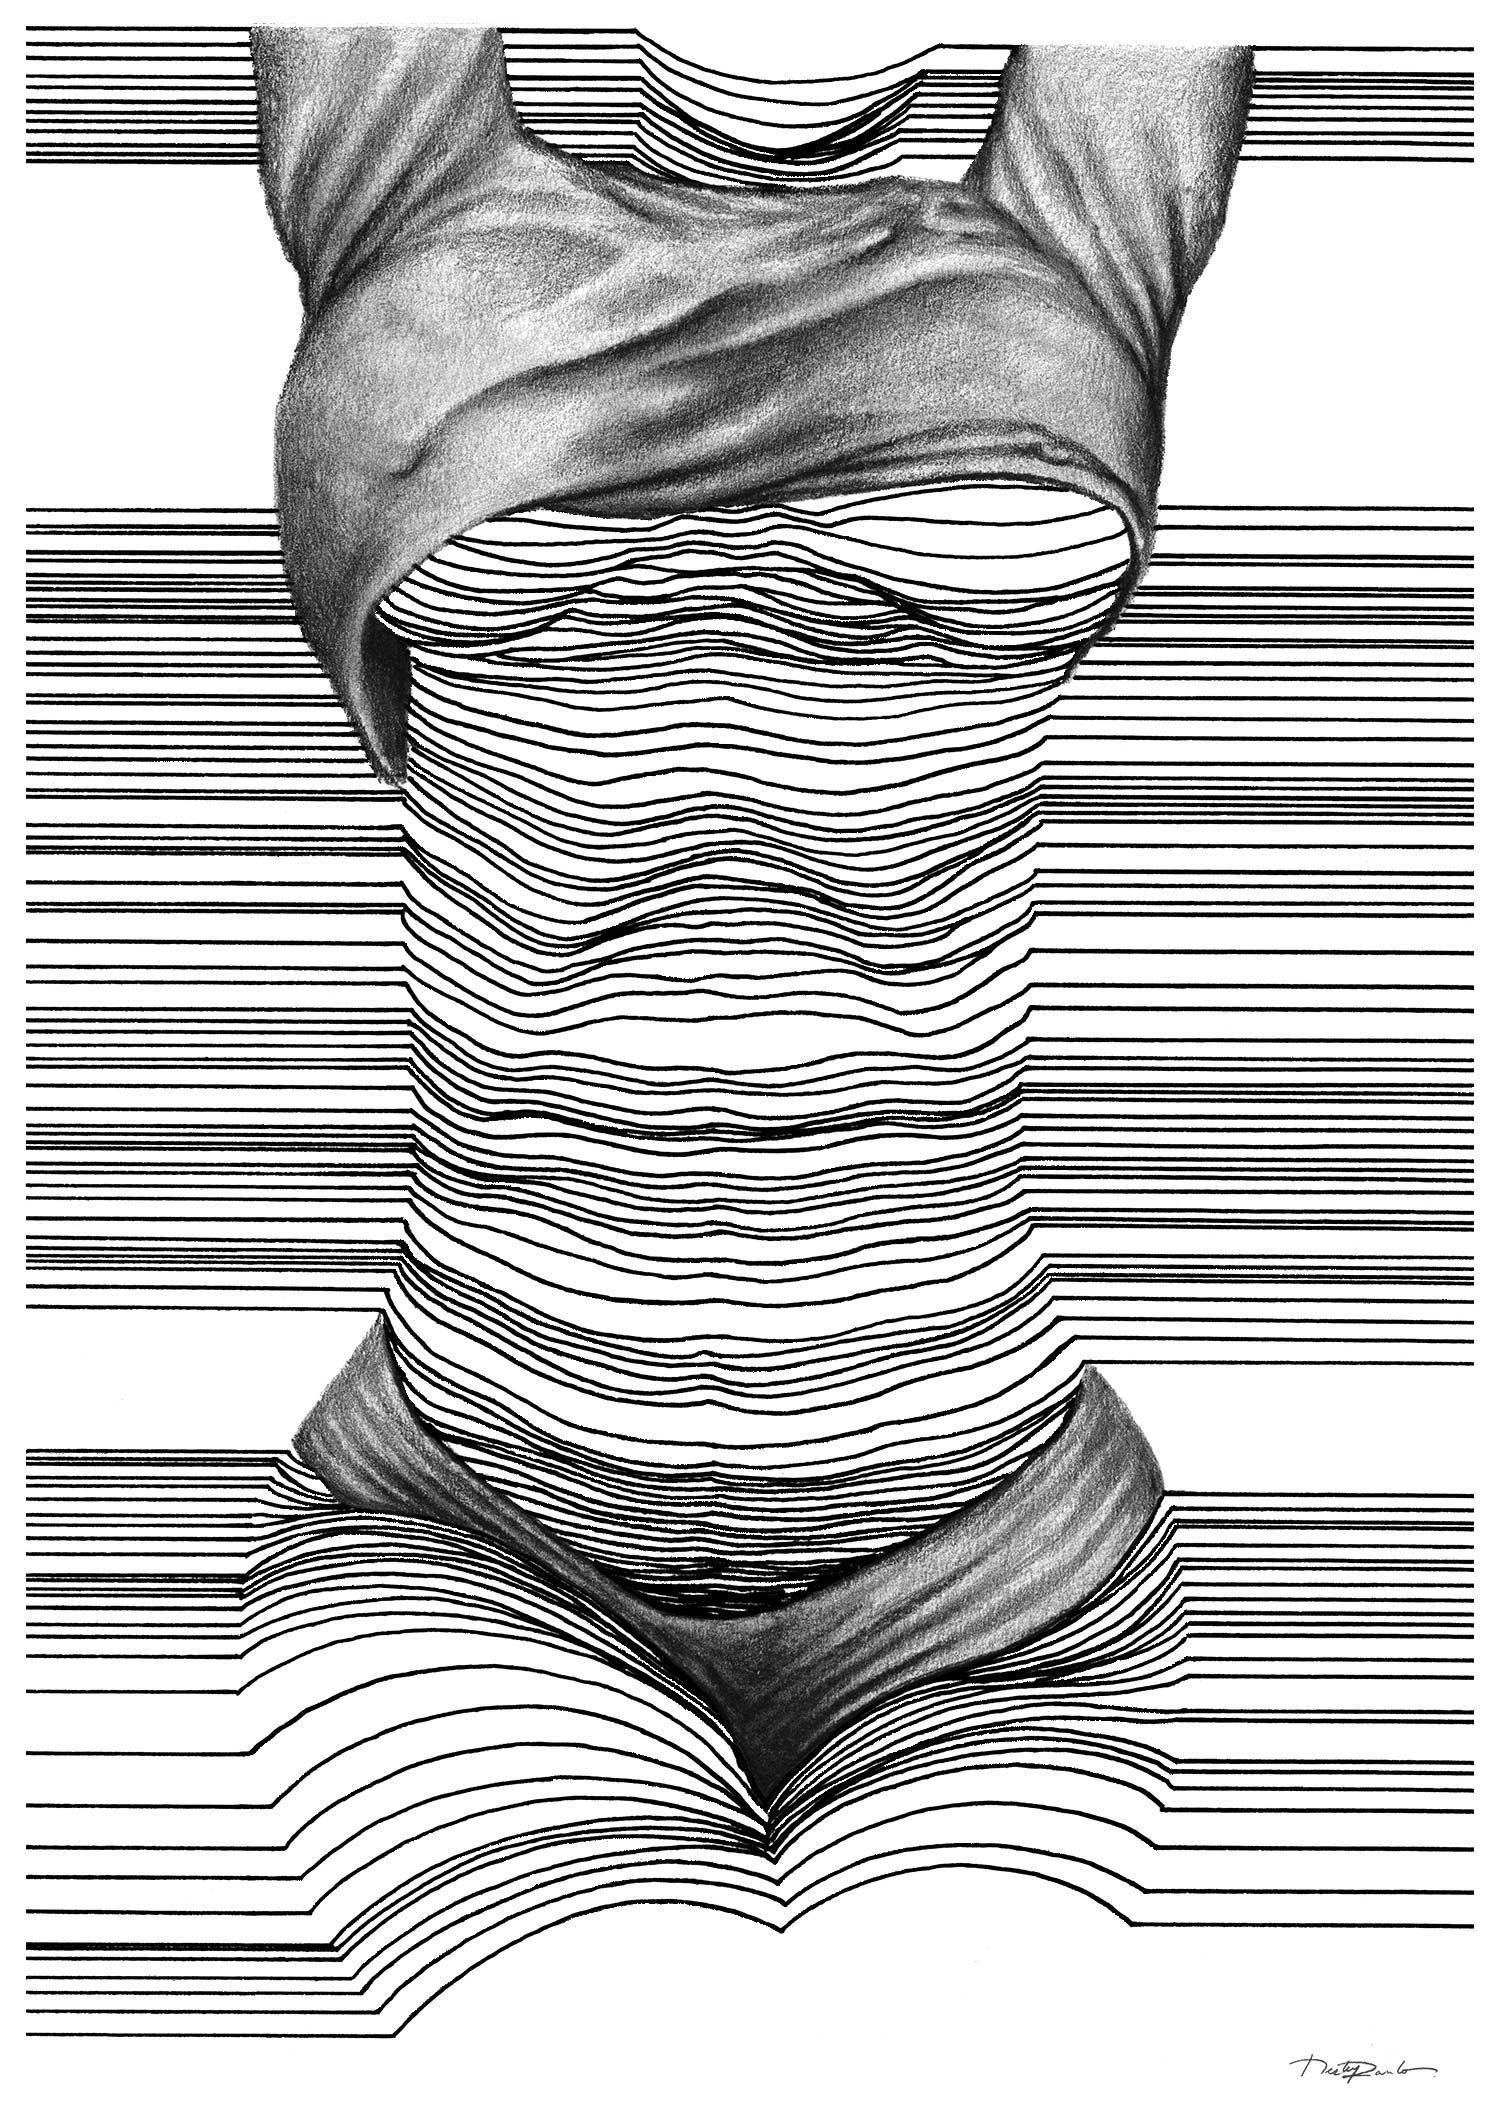 D Line Drawings Zip : Sensual d line art by nester formentera drawings